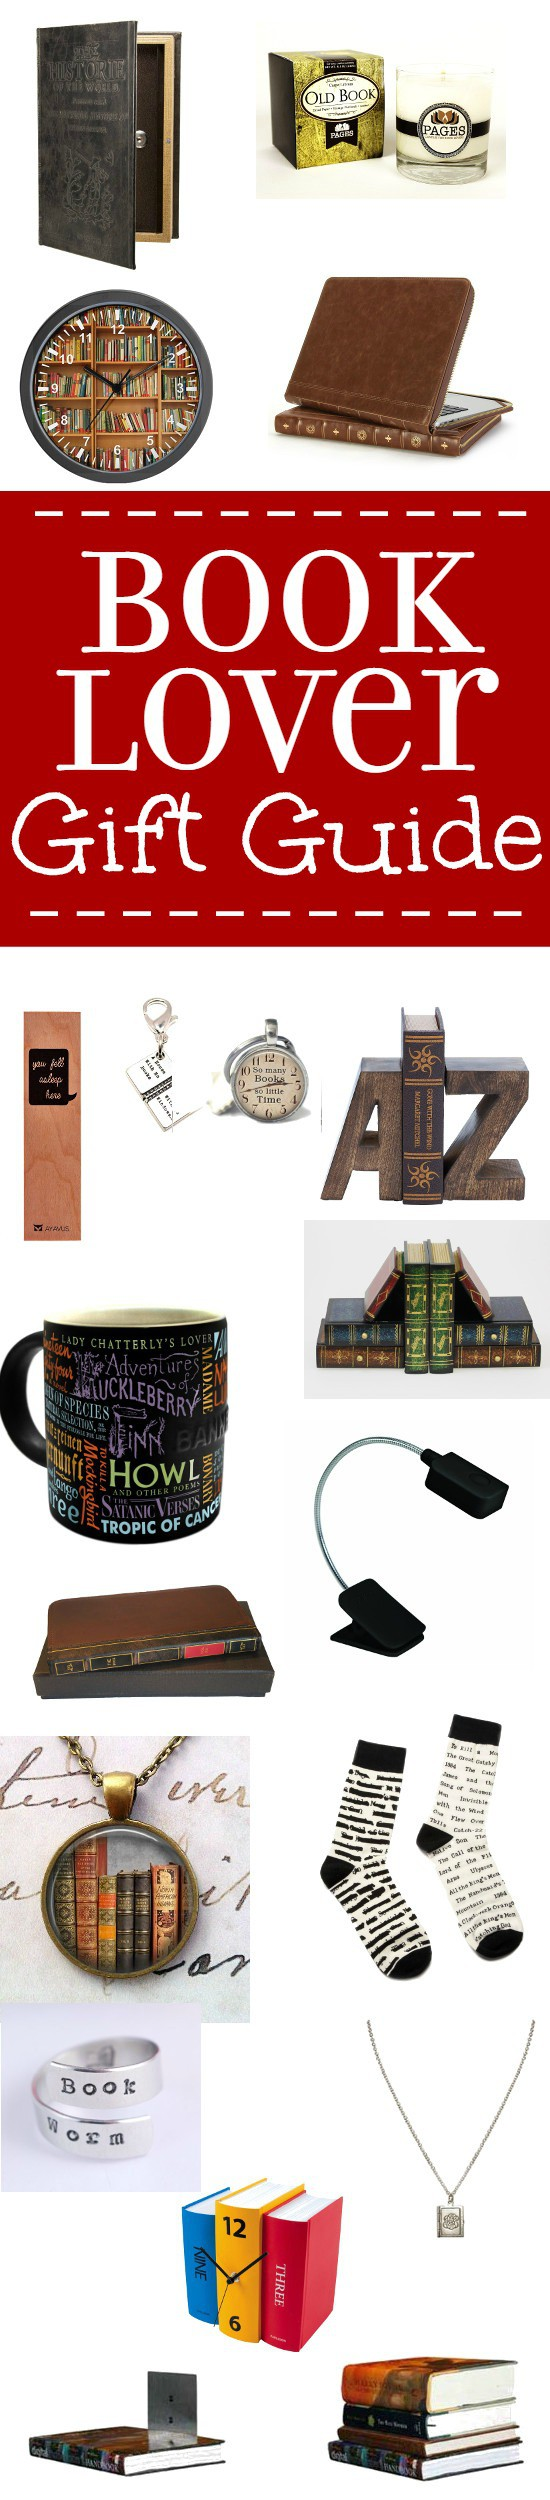 Book Lover Gift Ideas The Gracious Wife